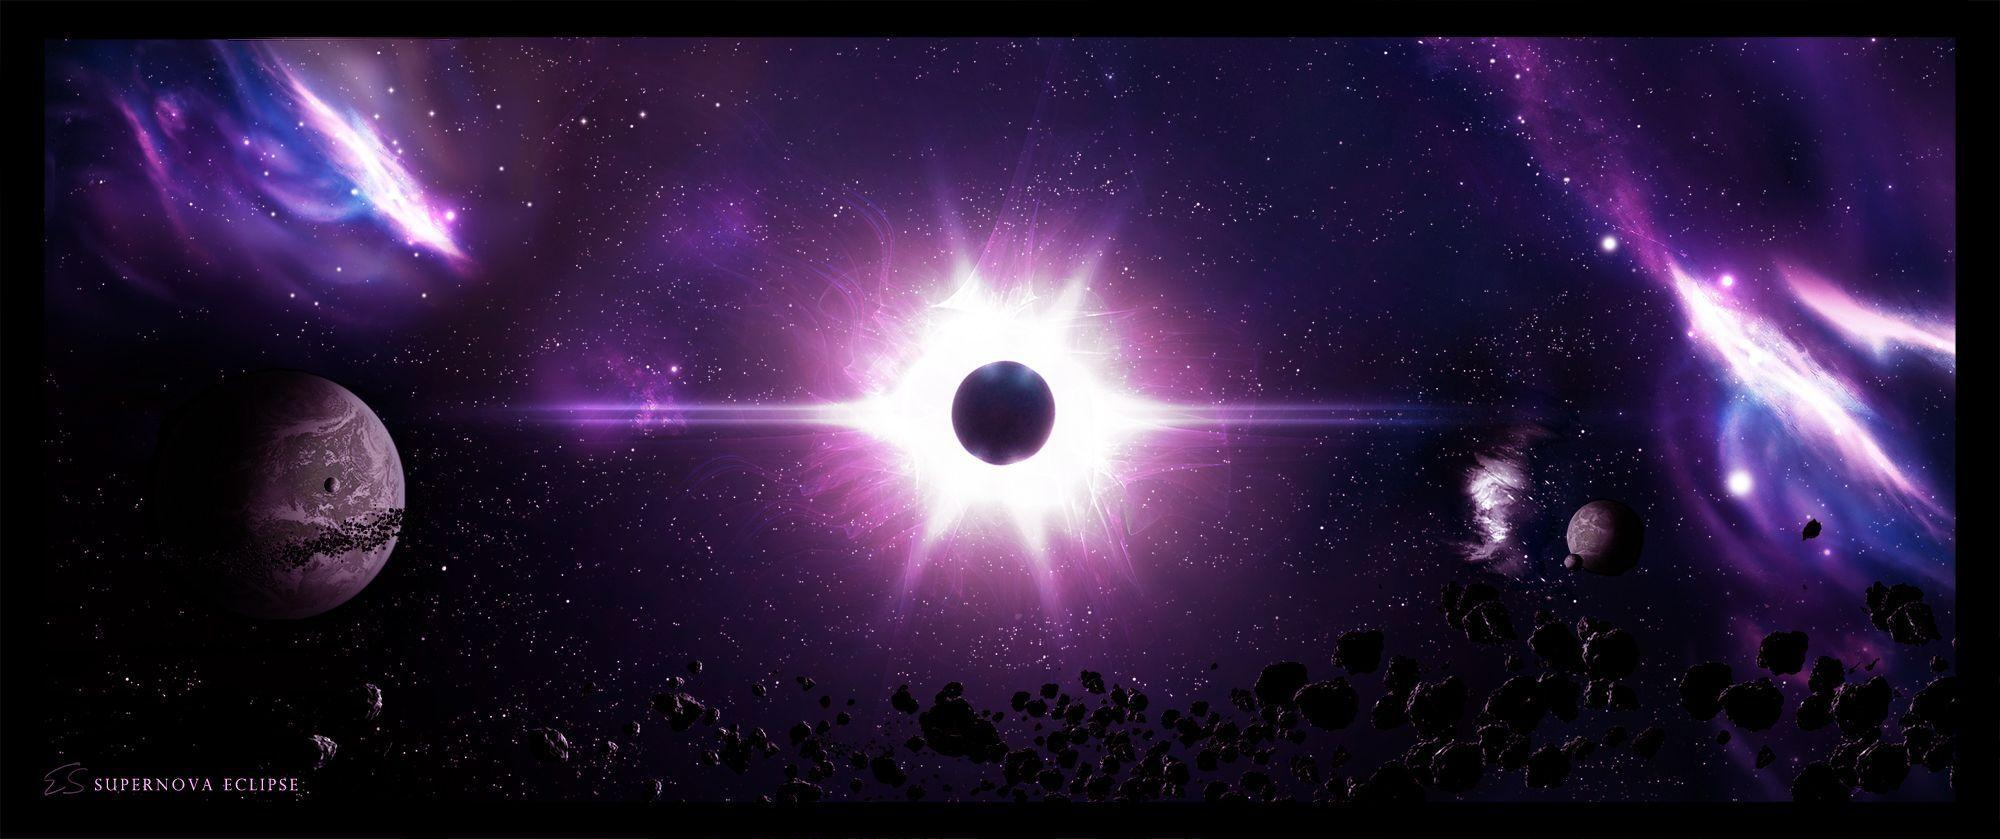 supernova [/caption] a supernova is the explosion of a star in an instant, a star with many times the mass of our own sun can detonate with the energy of a billion suns and then, within just a few hours or days.